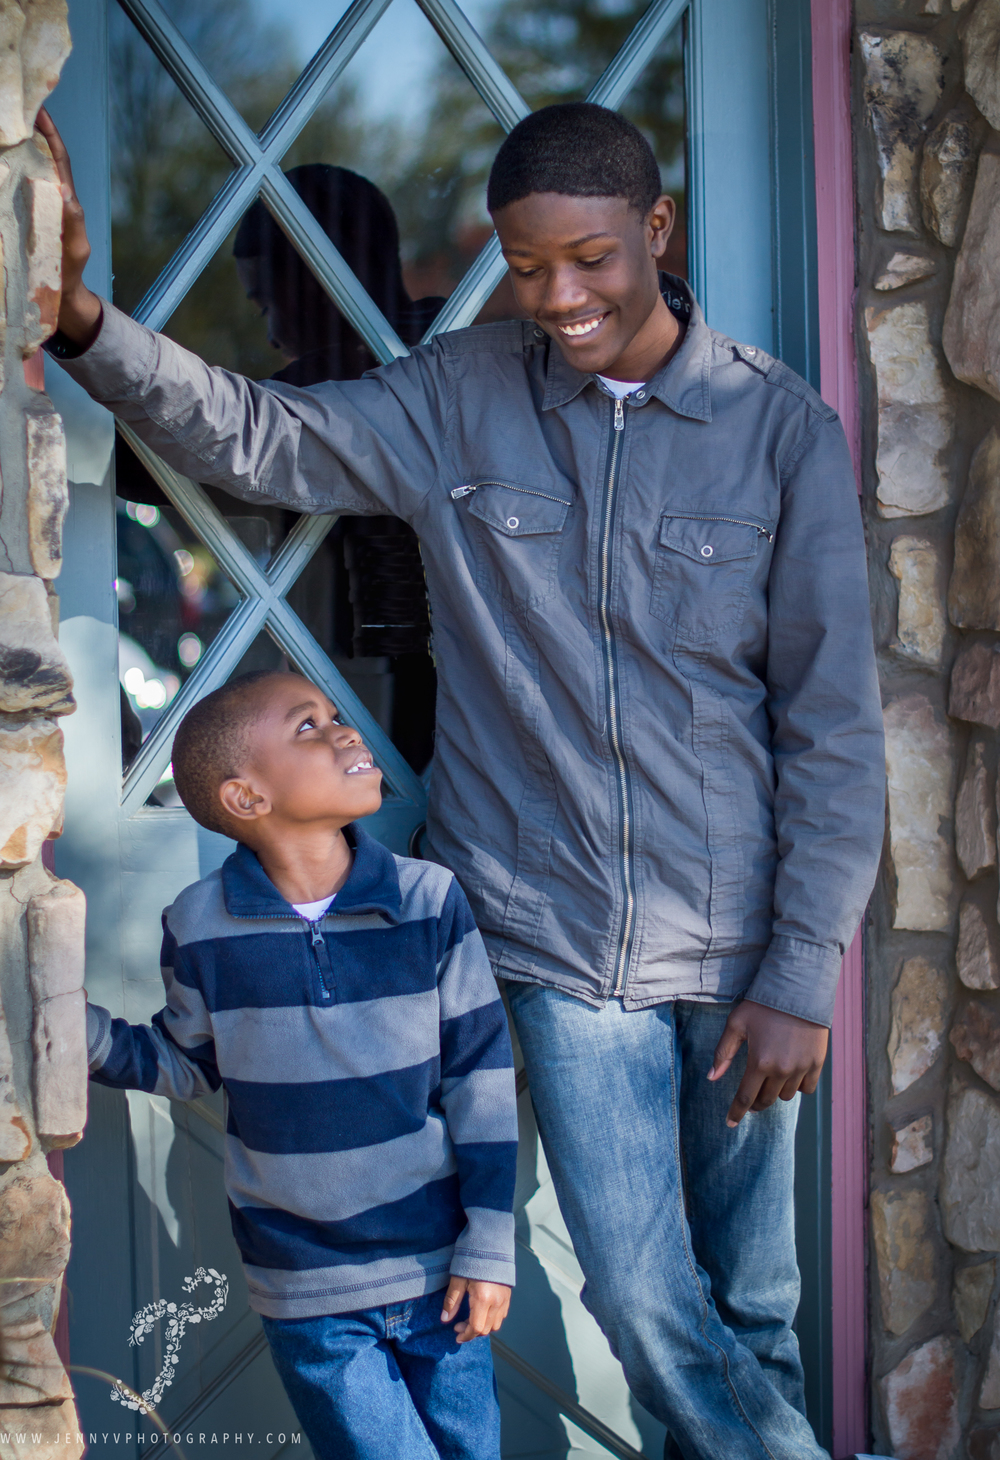 Children's photo shoot